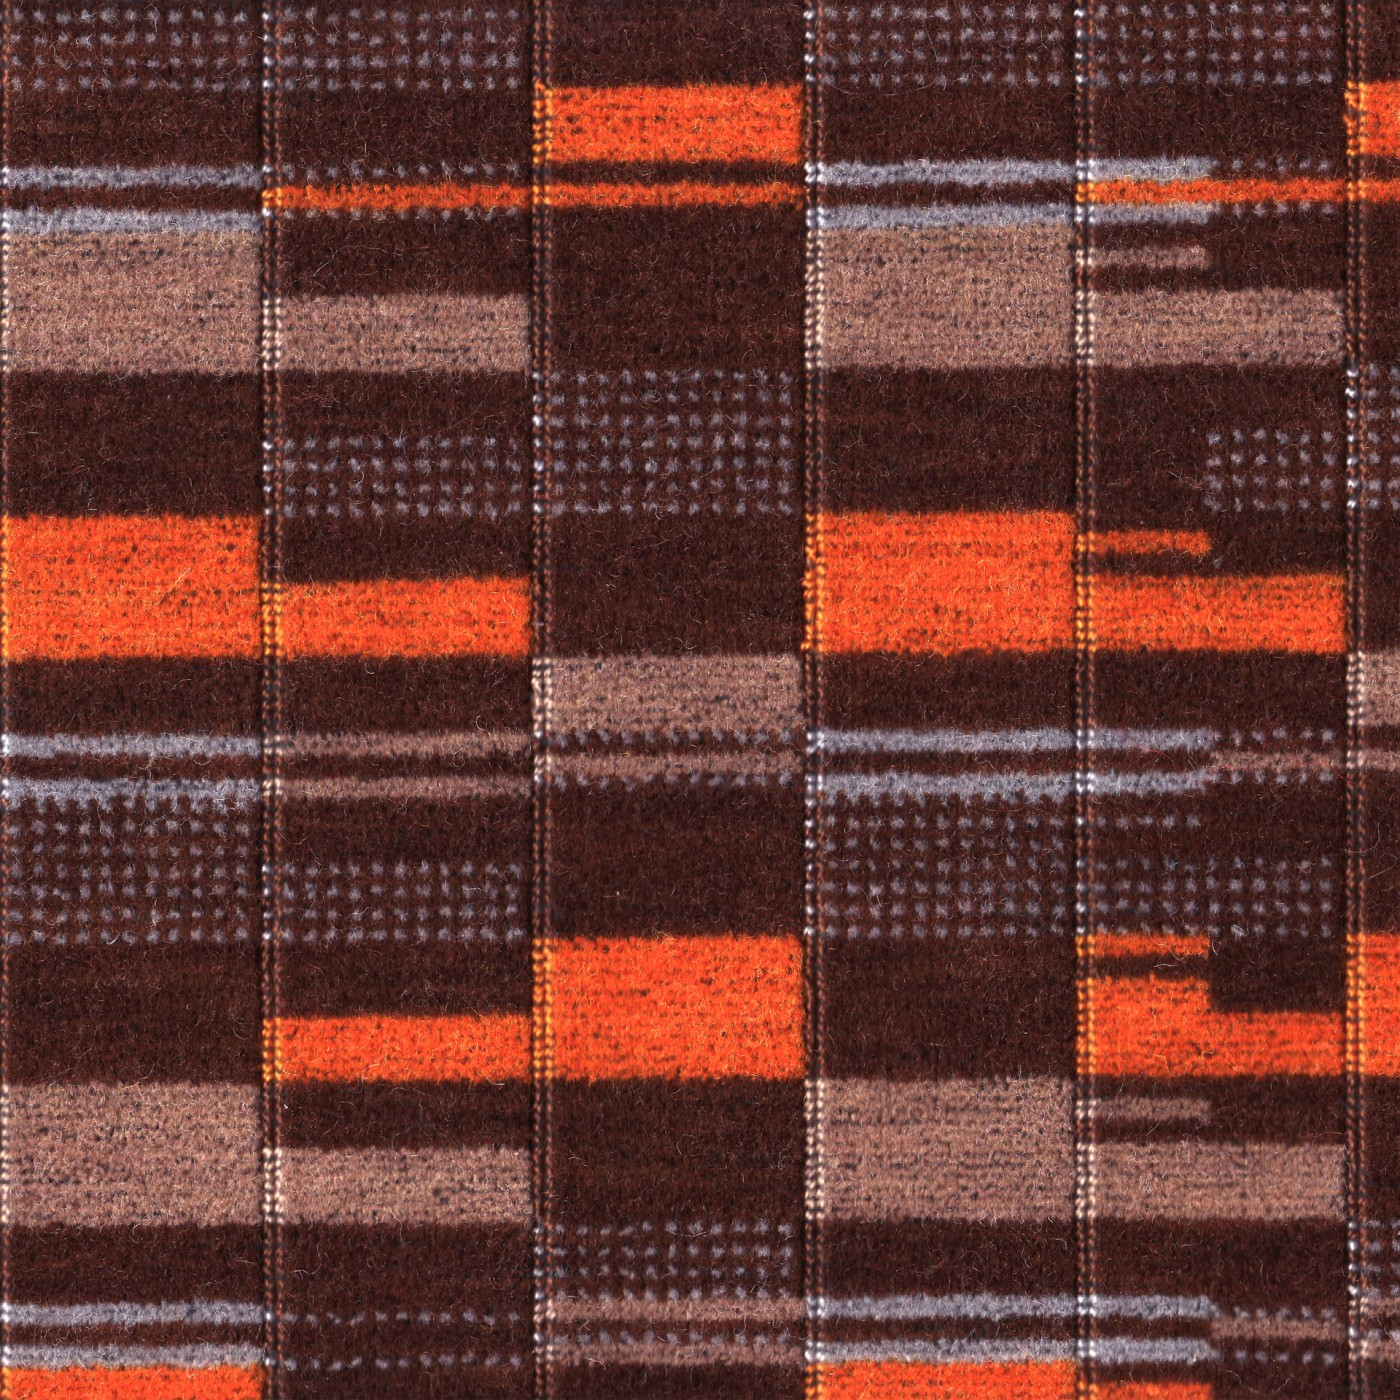 Moquette Orange Overground Moquette - Wallace & Sewell